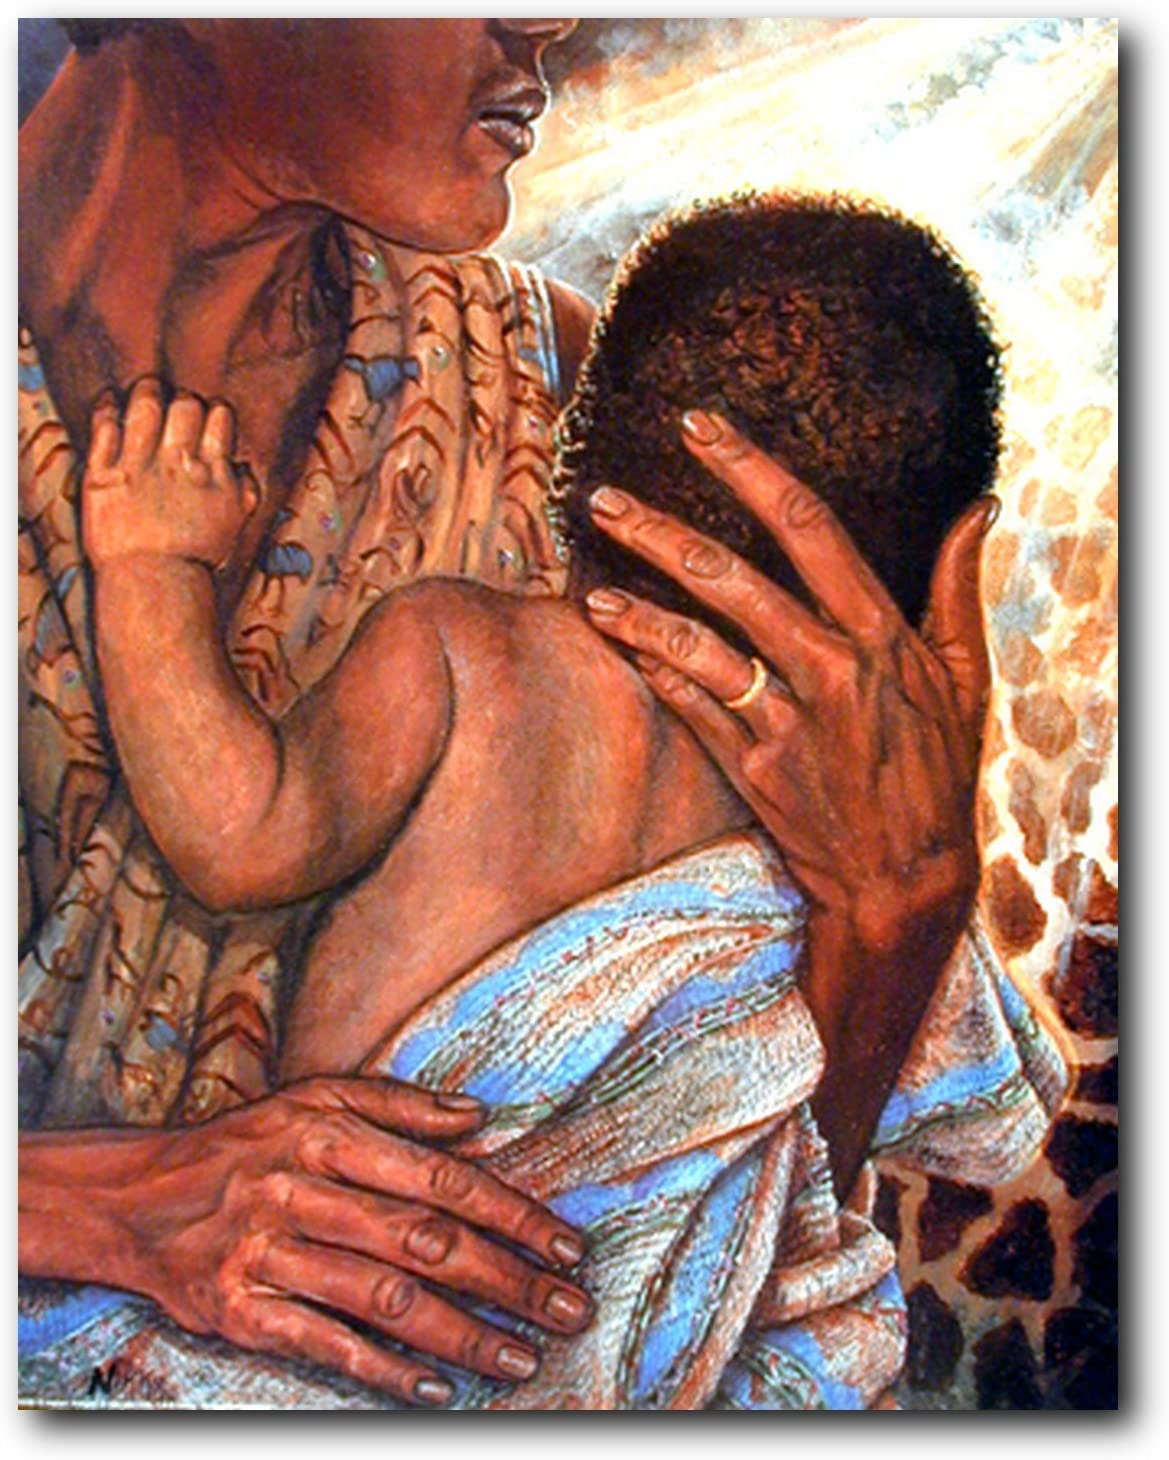 African American Wall Decor Mother with Child Art Print Poster (16x20)